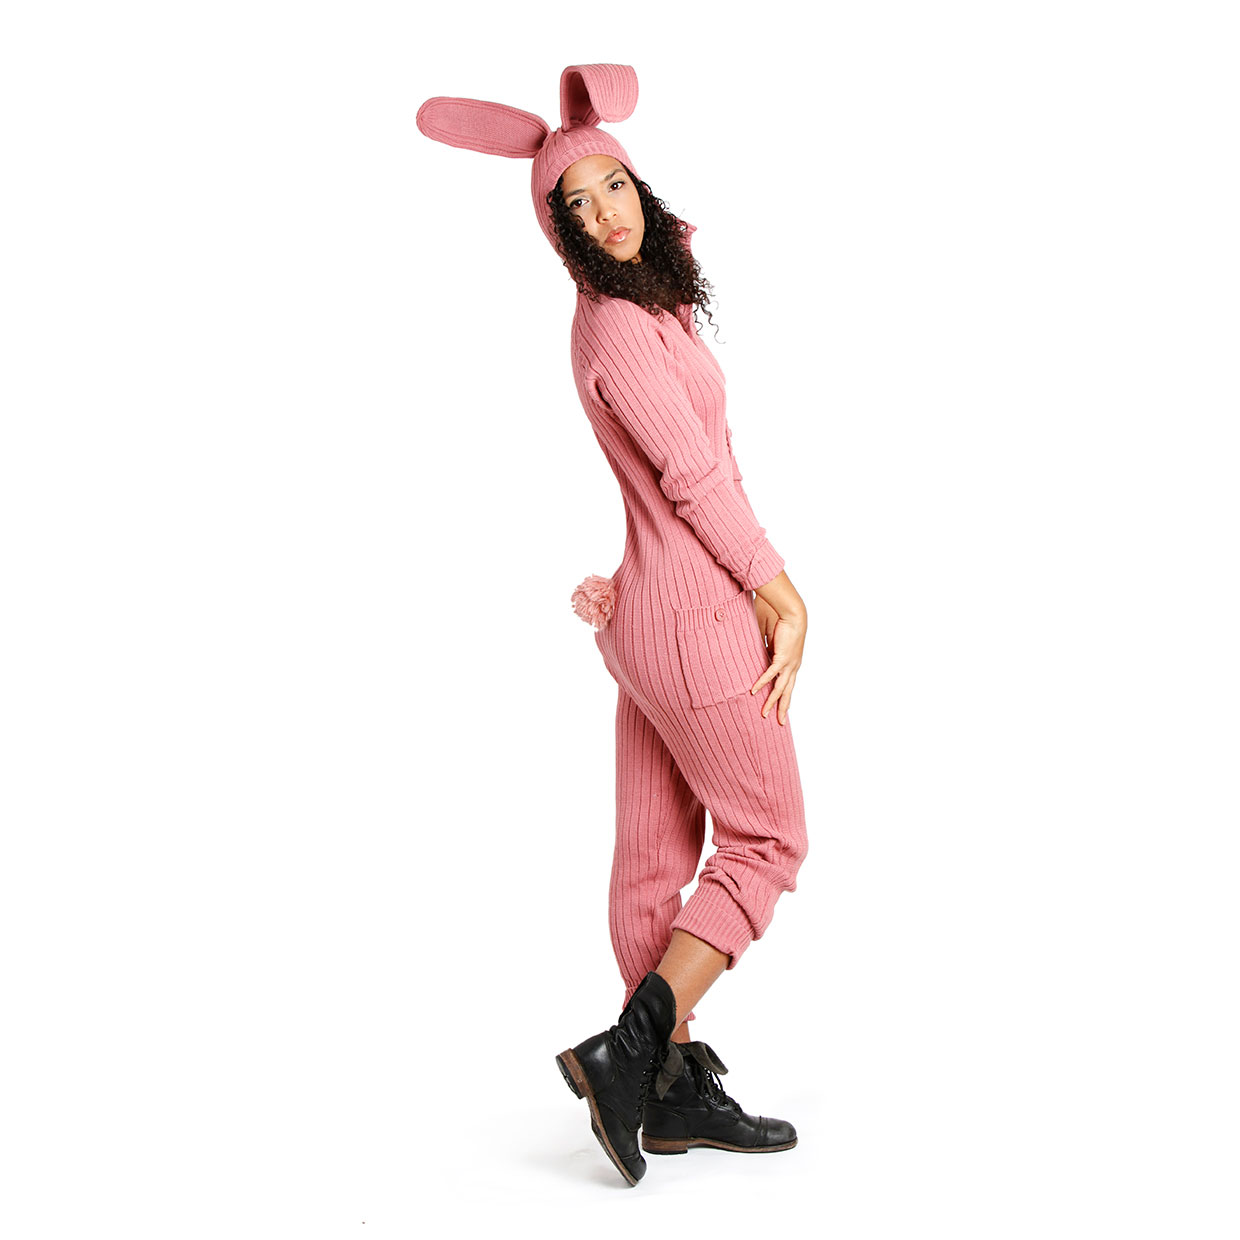 Drawn rabbit suit Suit bunny pink Bunny Pink